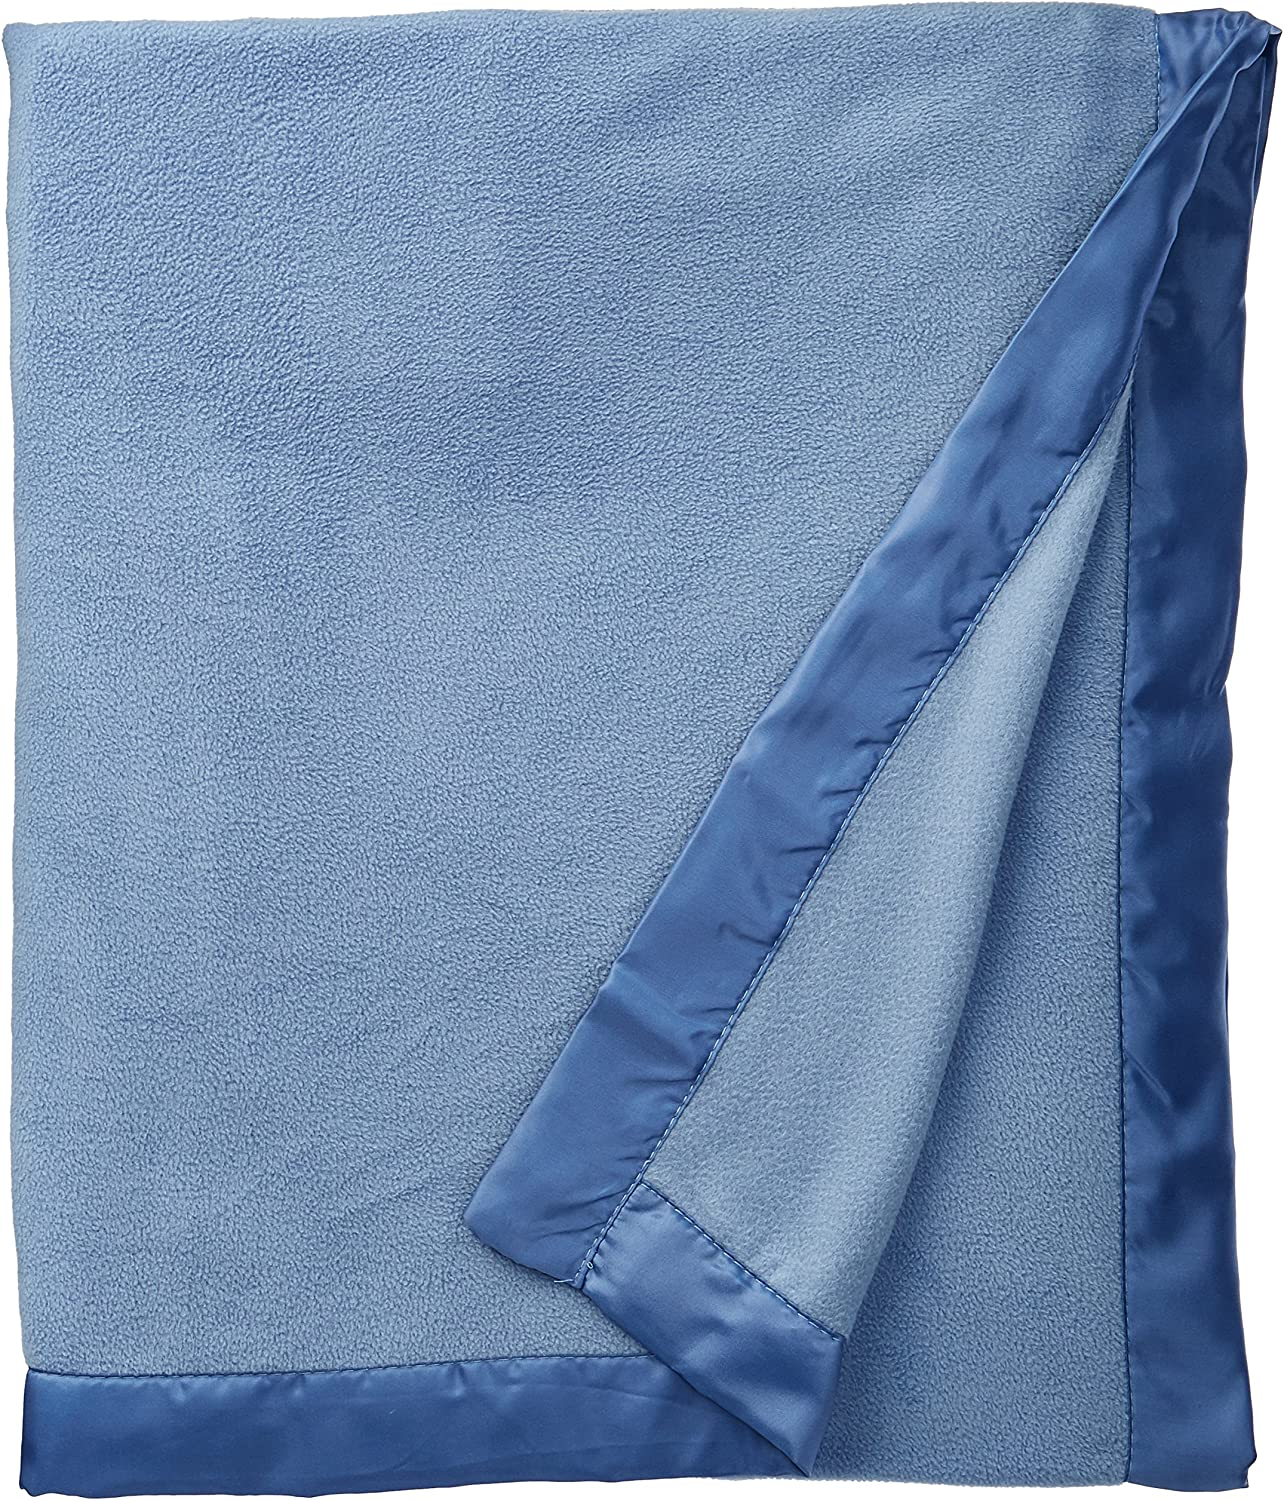 Premier Comfort Micro Fleece Blanket, King, Wedgewood(BL51-0523)